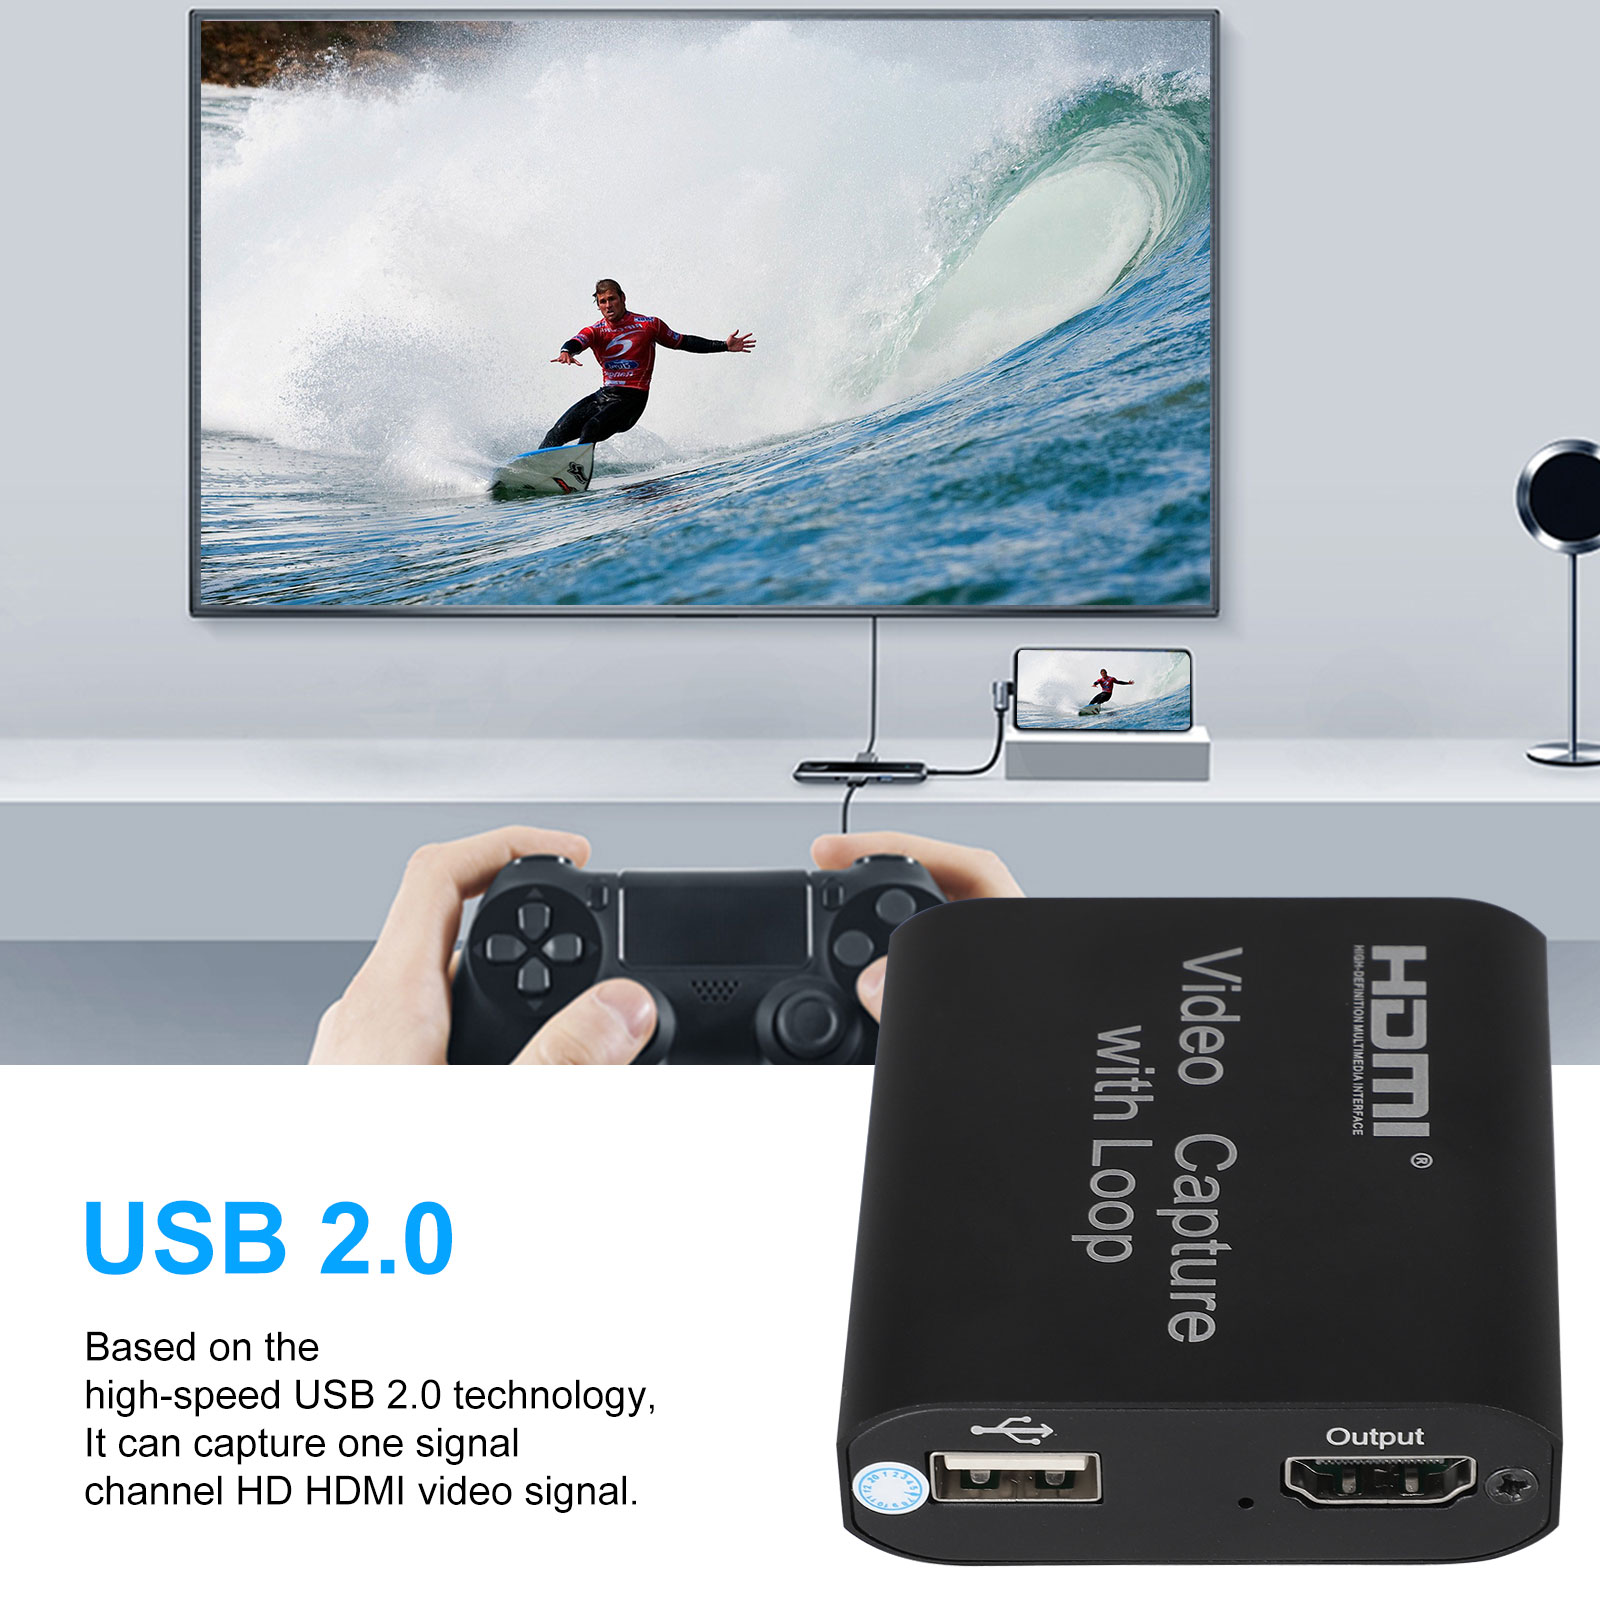 1080p-60fps-HDMI-Video-Digtal-Capture-Card-Recorder-for-Streaming-Meeting-Game thumbnail 3